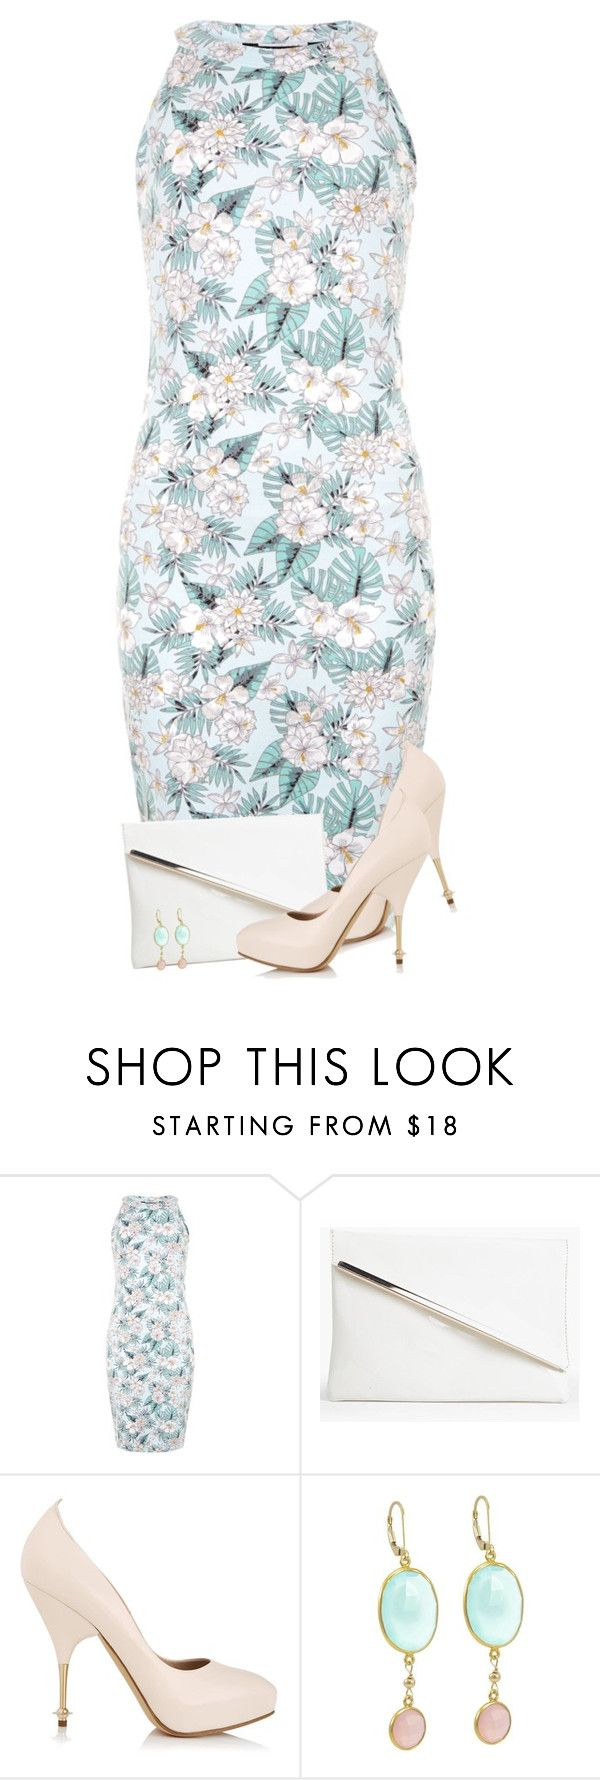 """""""Pink Pastel Pumps"""" by daiscat ❤ liked on Polyvore featuring New Look, Boohoo, Vivienne Westwood, Pumps, tropical and pastel"""